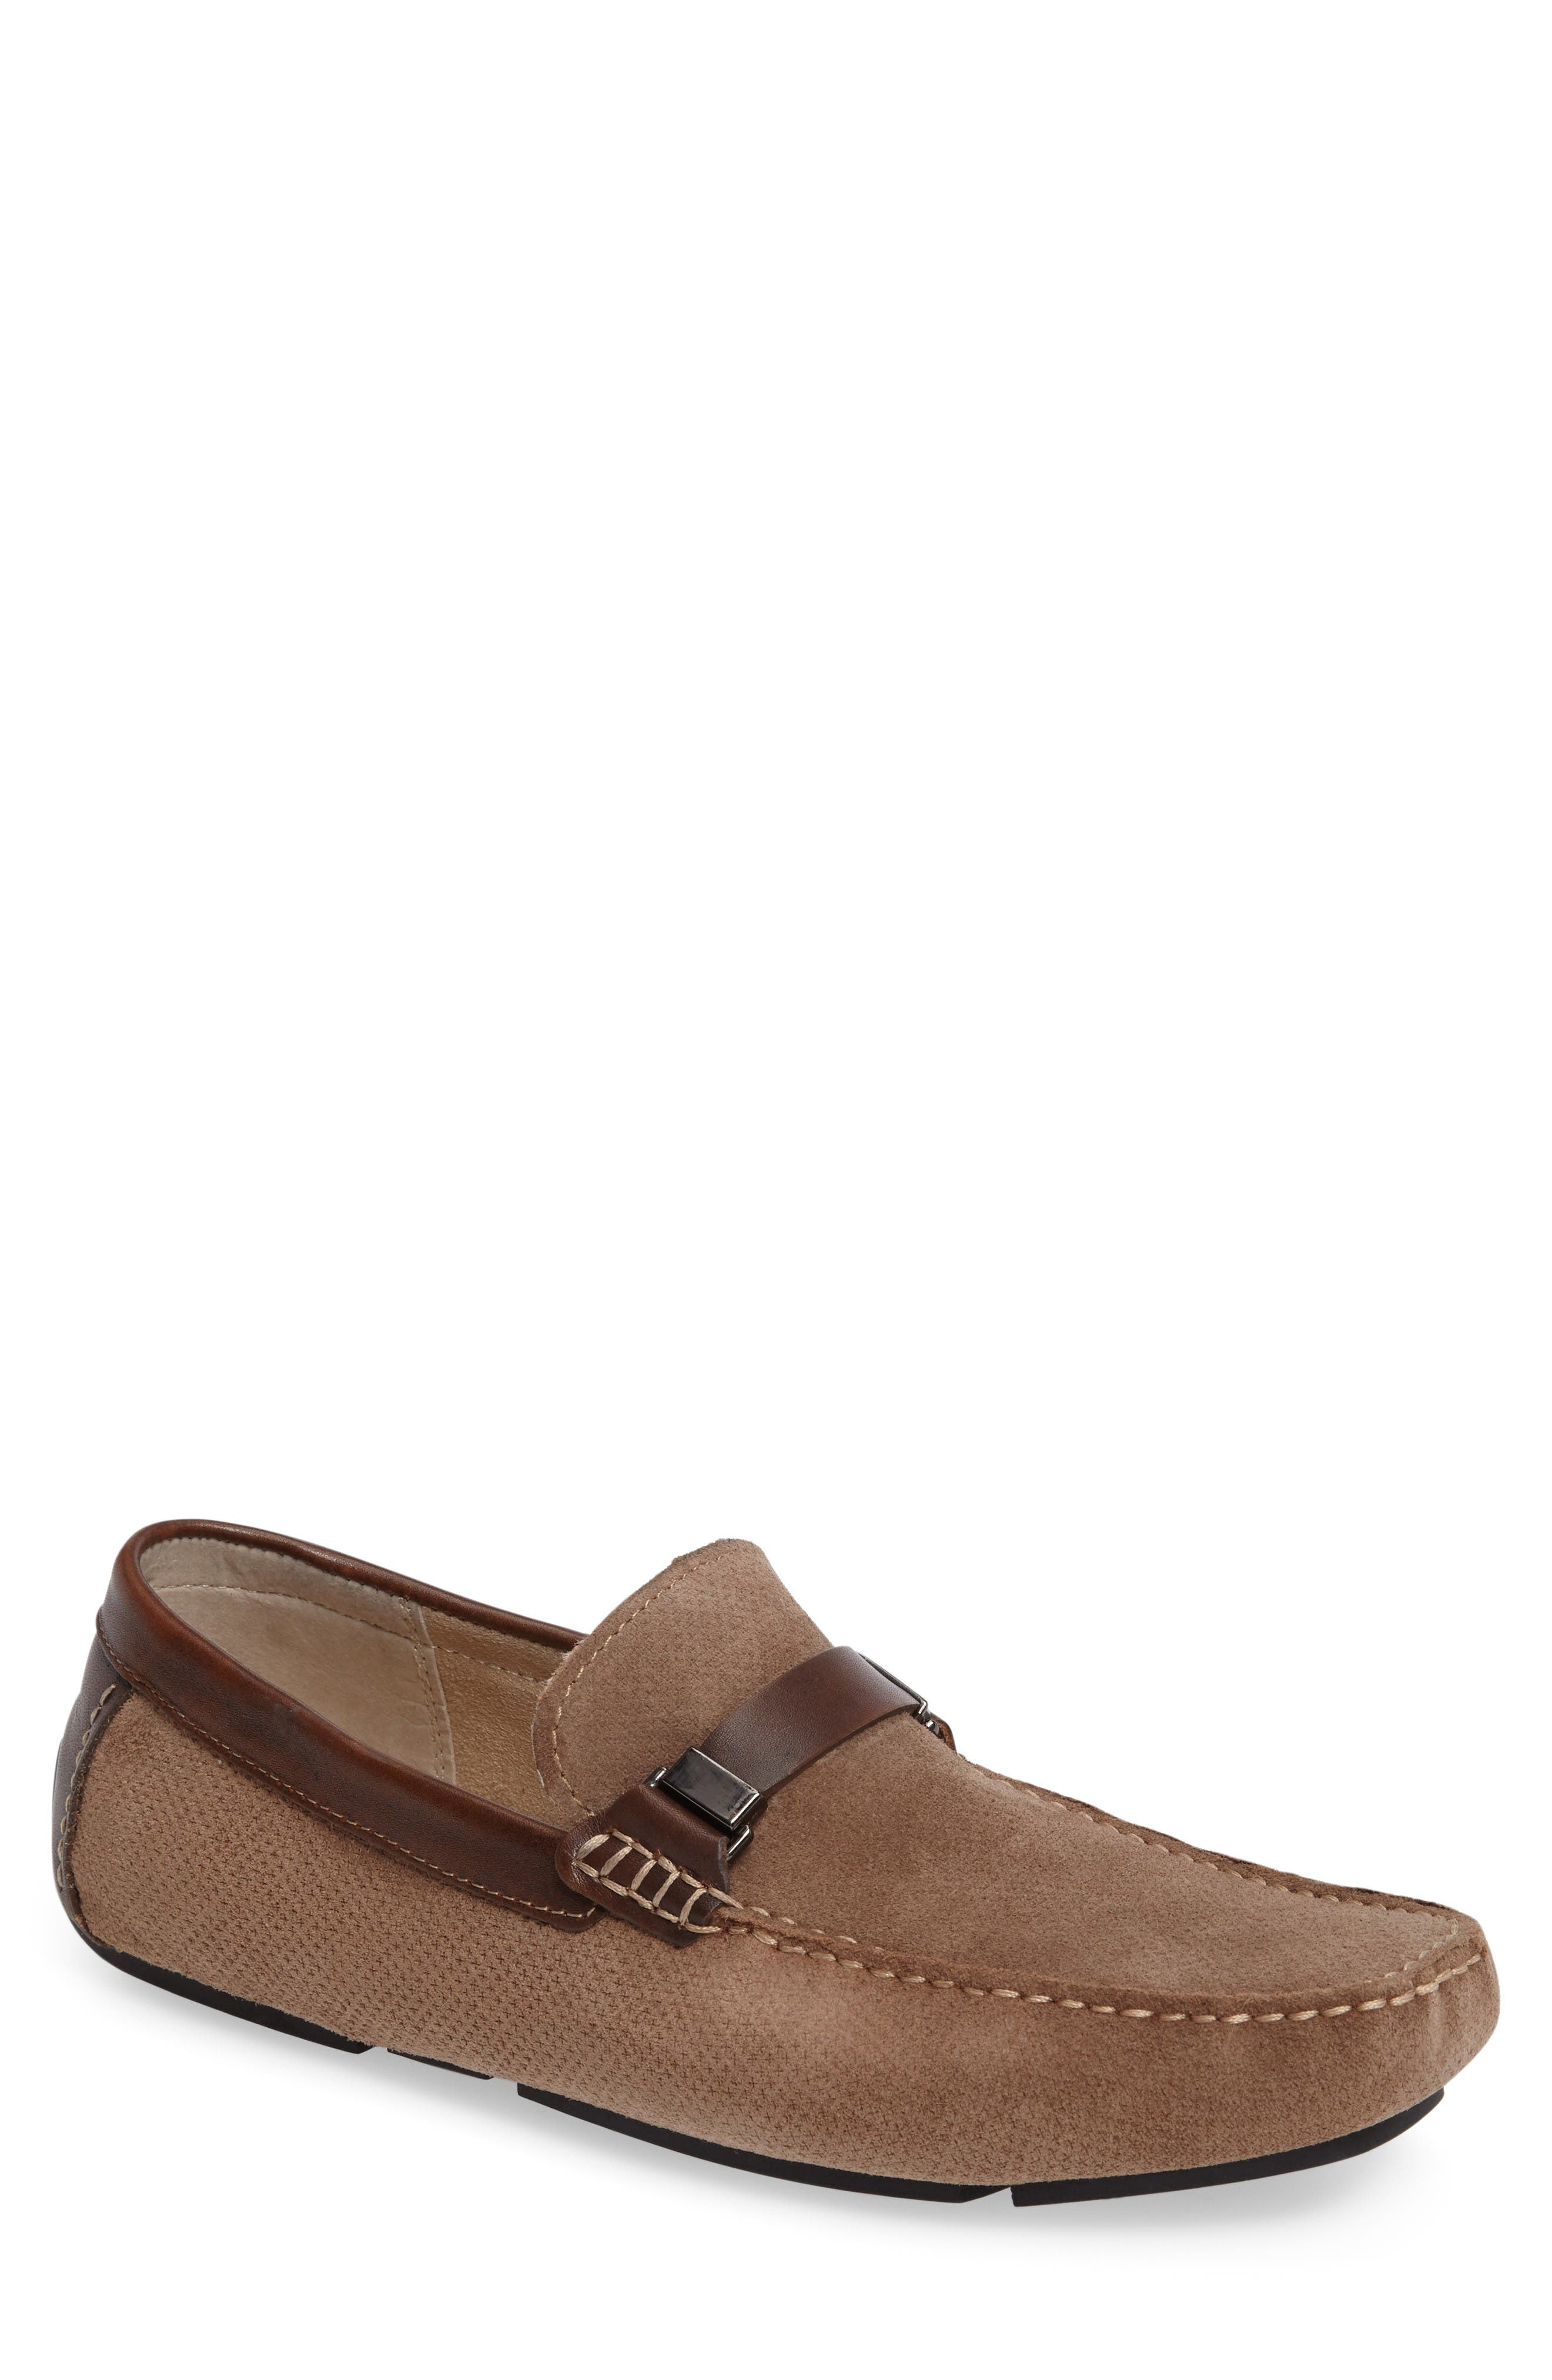 Main Image - Reaction Kenneth Cole Herd the Word Driving Loafer (Men)